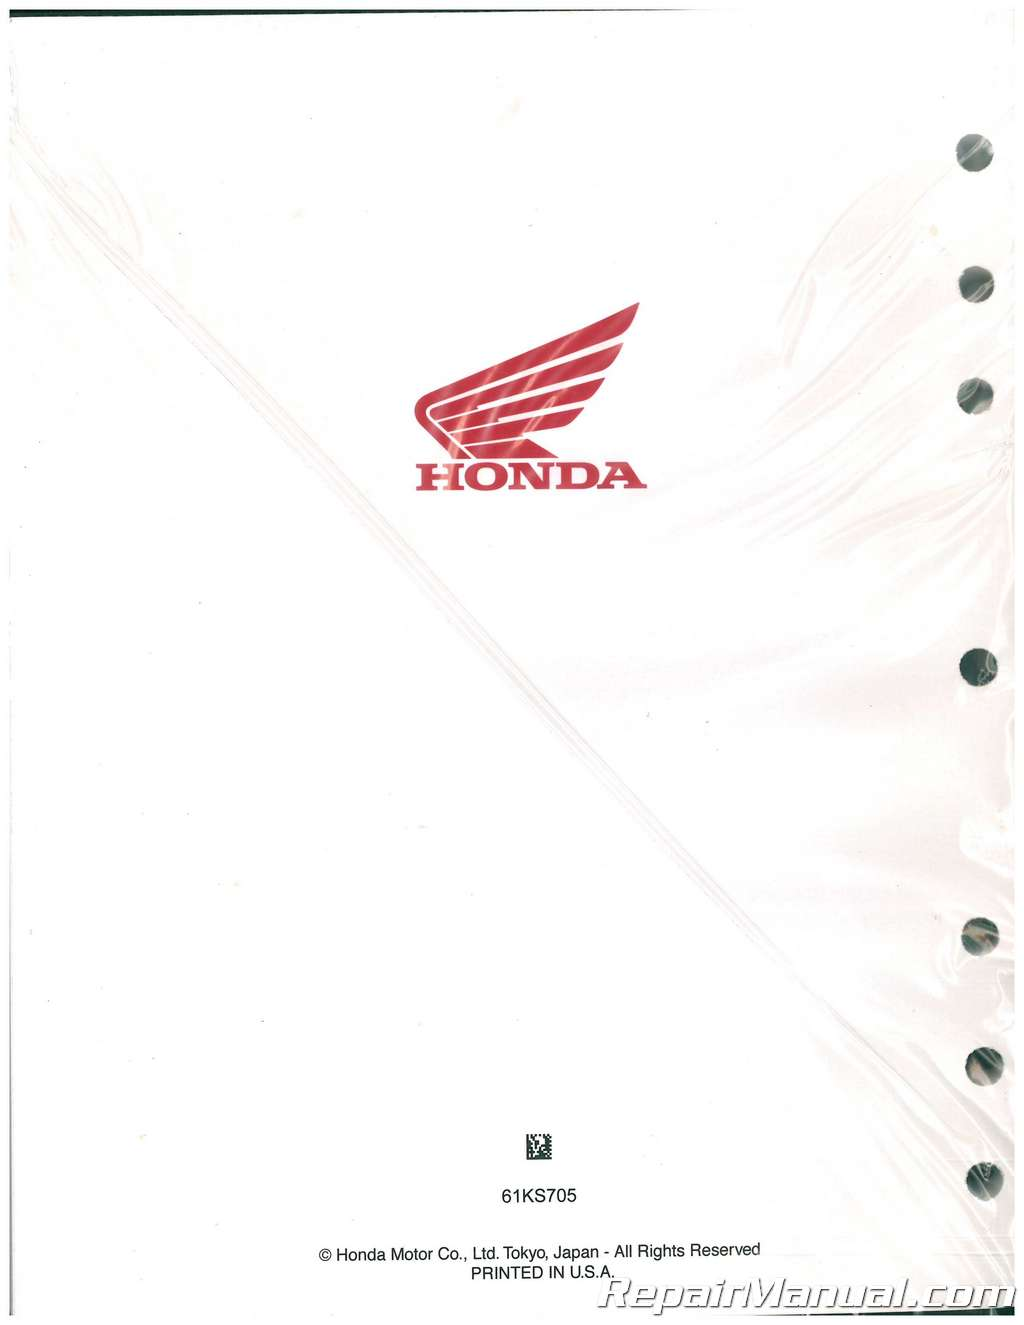 1986-1991 Honda CR250R Motorcycle Service Manual